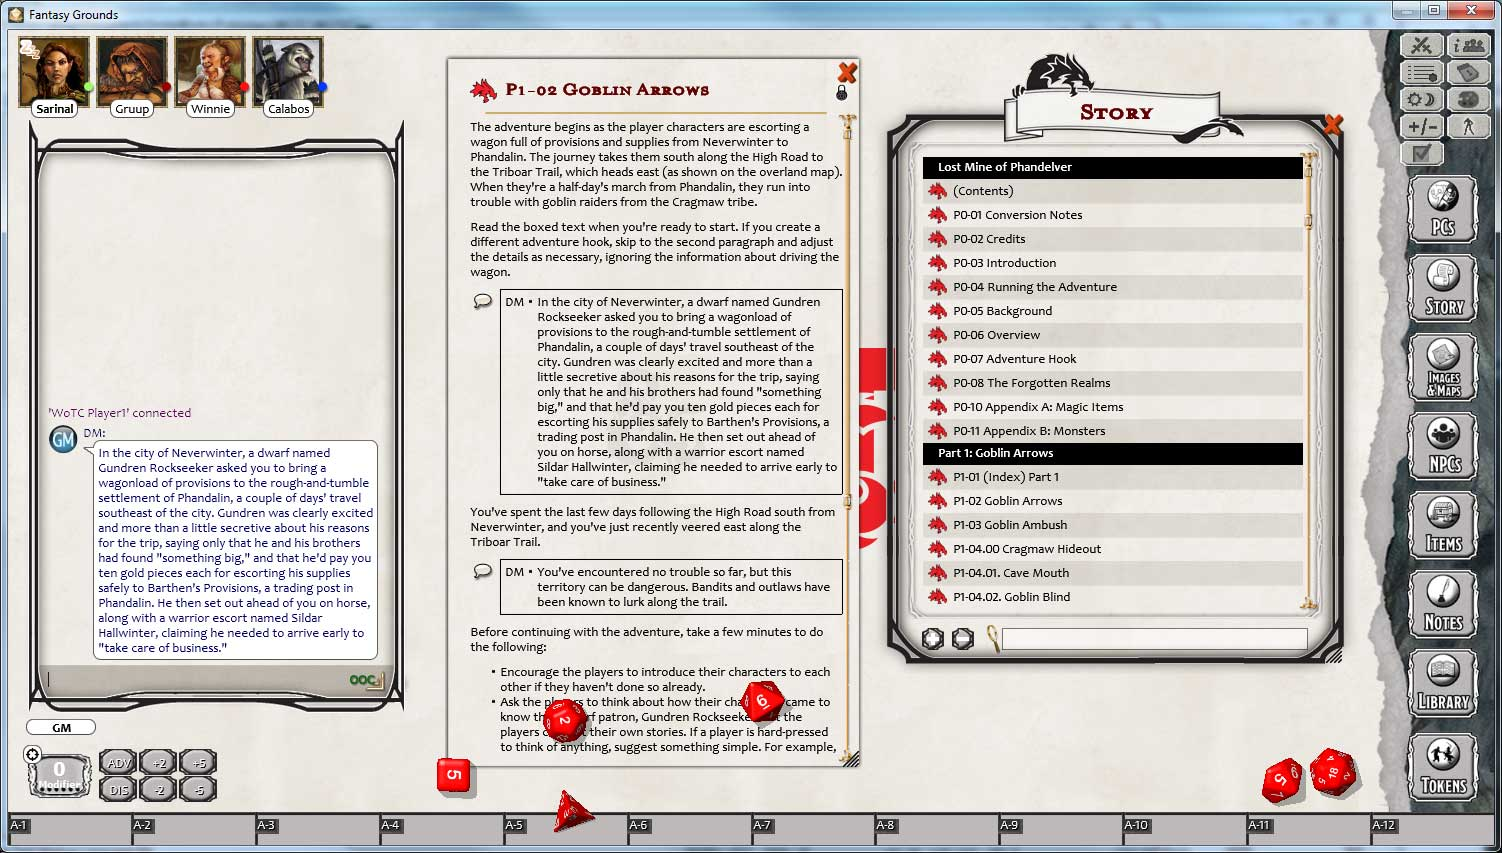 Fantasy Grounds - D&D Lost Mine of Phandelver